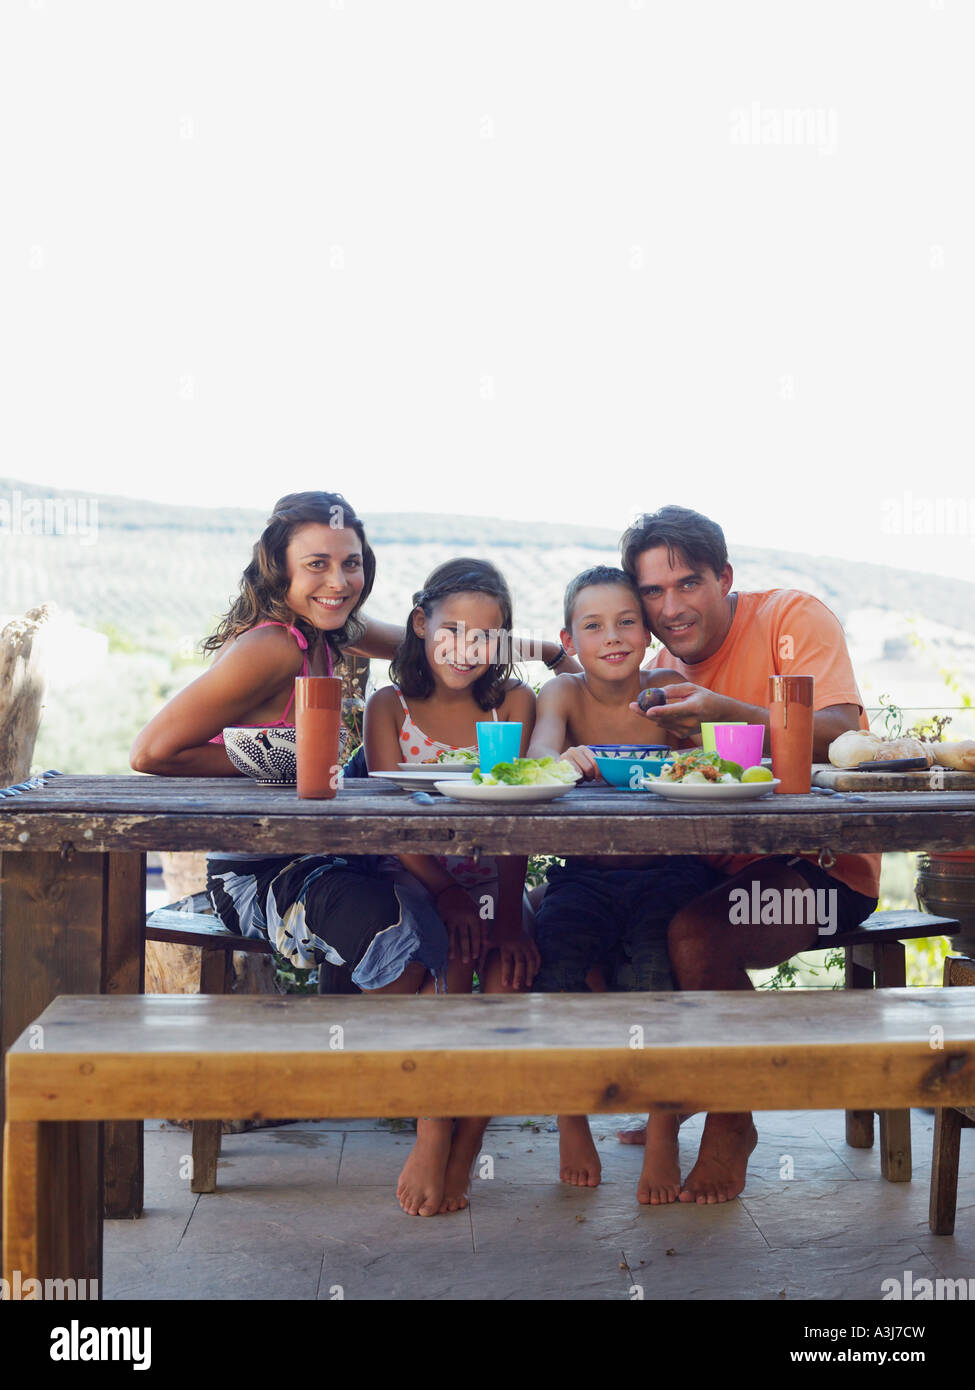 Family having meal outdoors - Stock Image